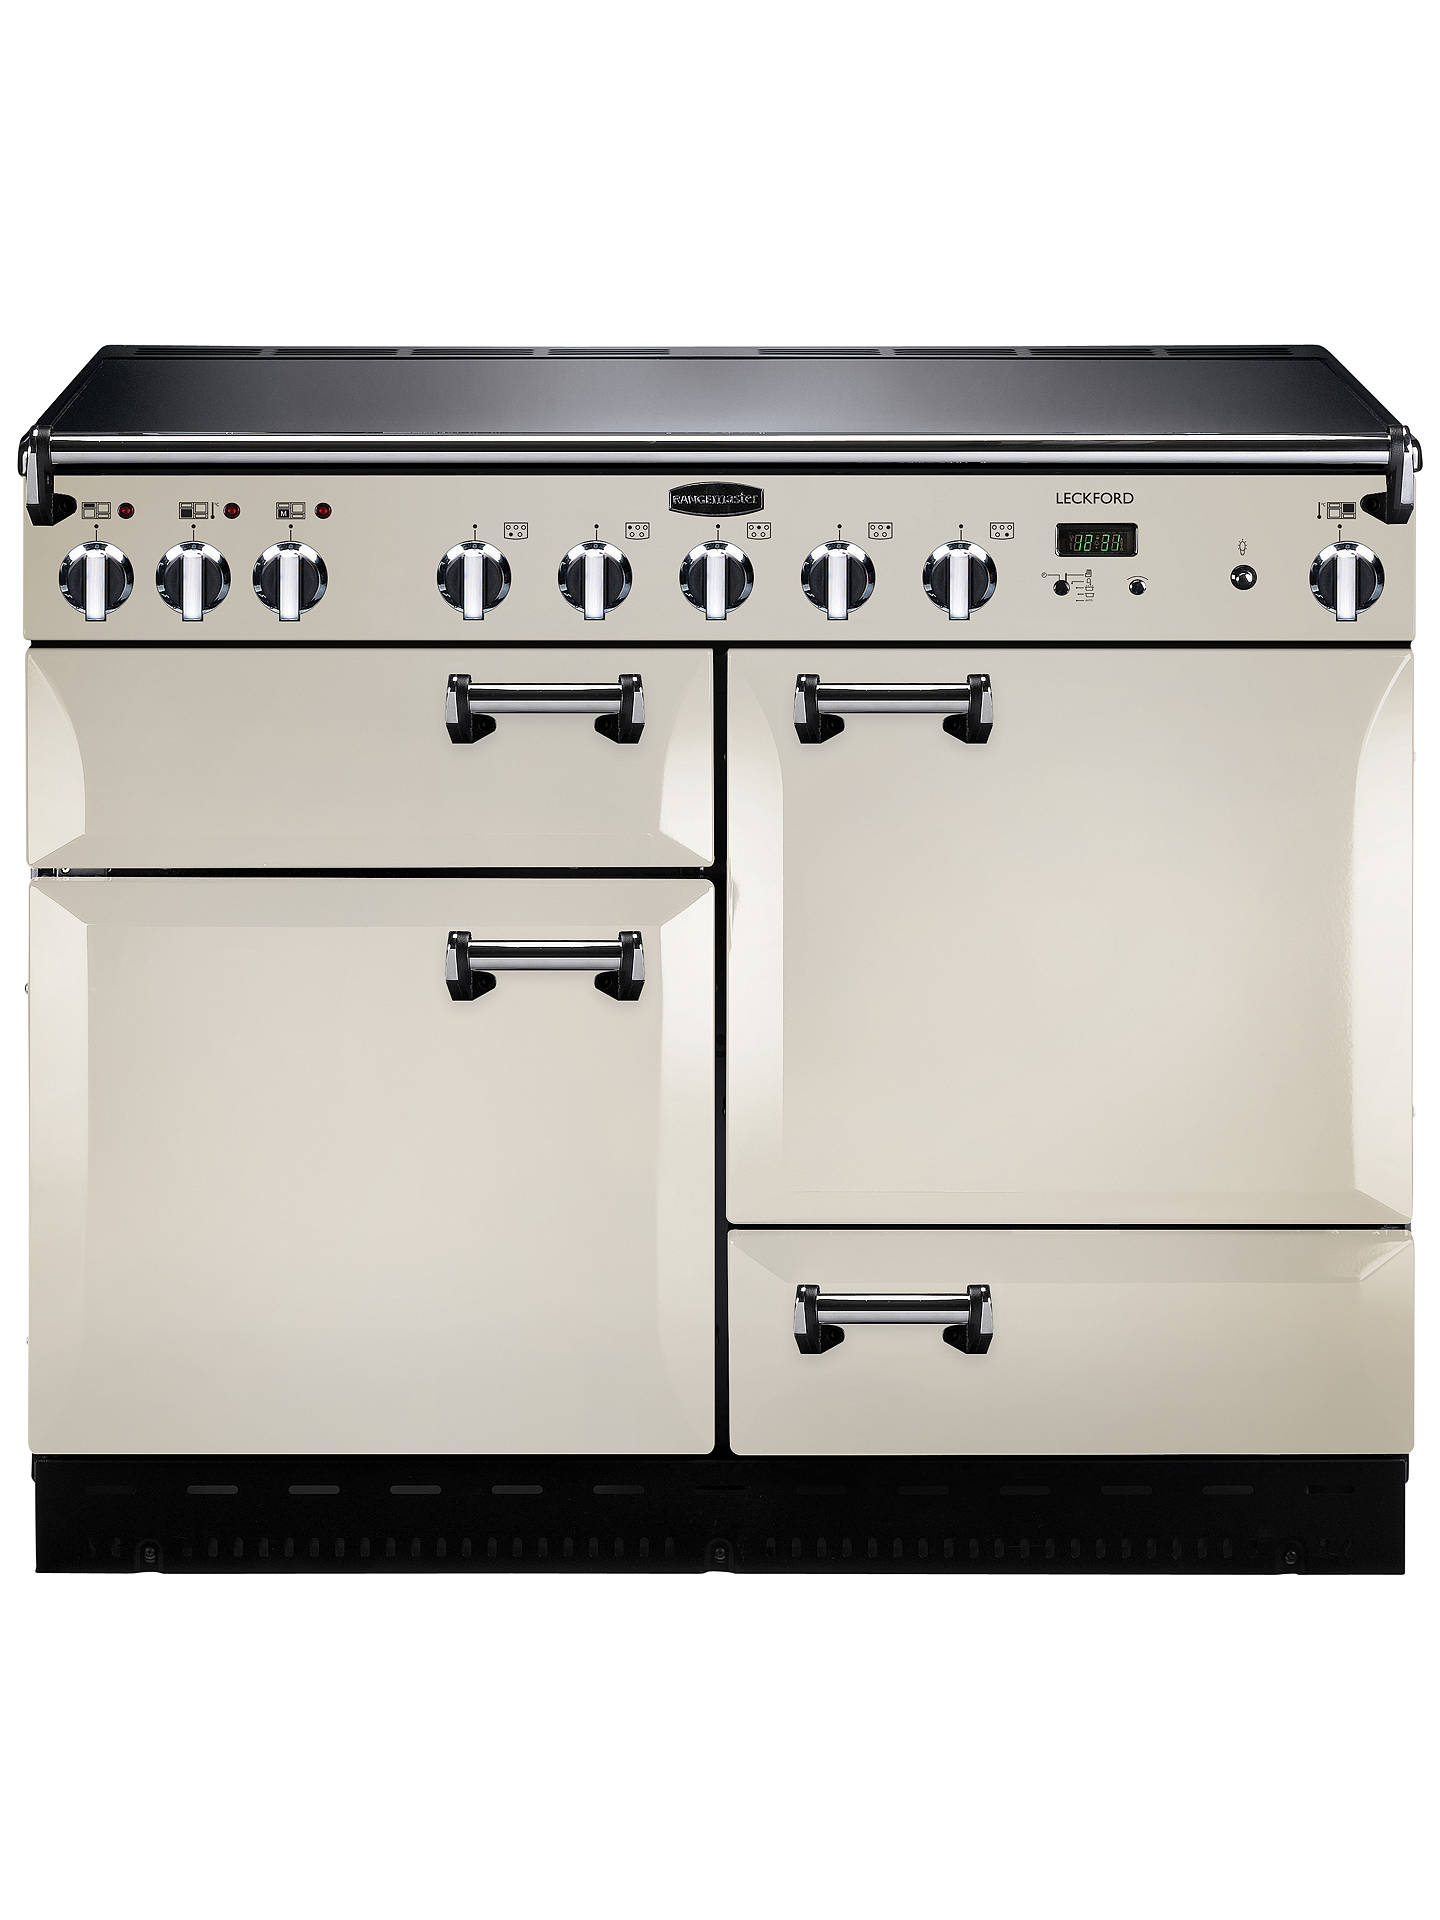 Buy Rangemaster Leckford LCK110EIIV/C Electric Induction Range Cooker, Ivory/Chrome Online at johnlewis.com